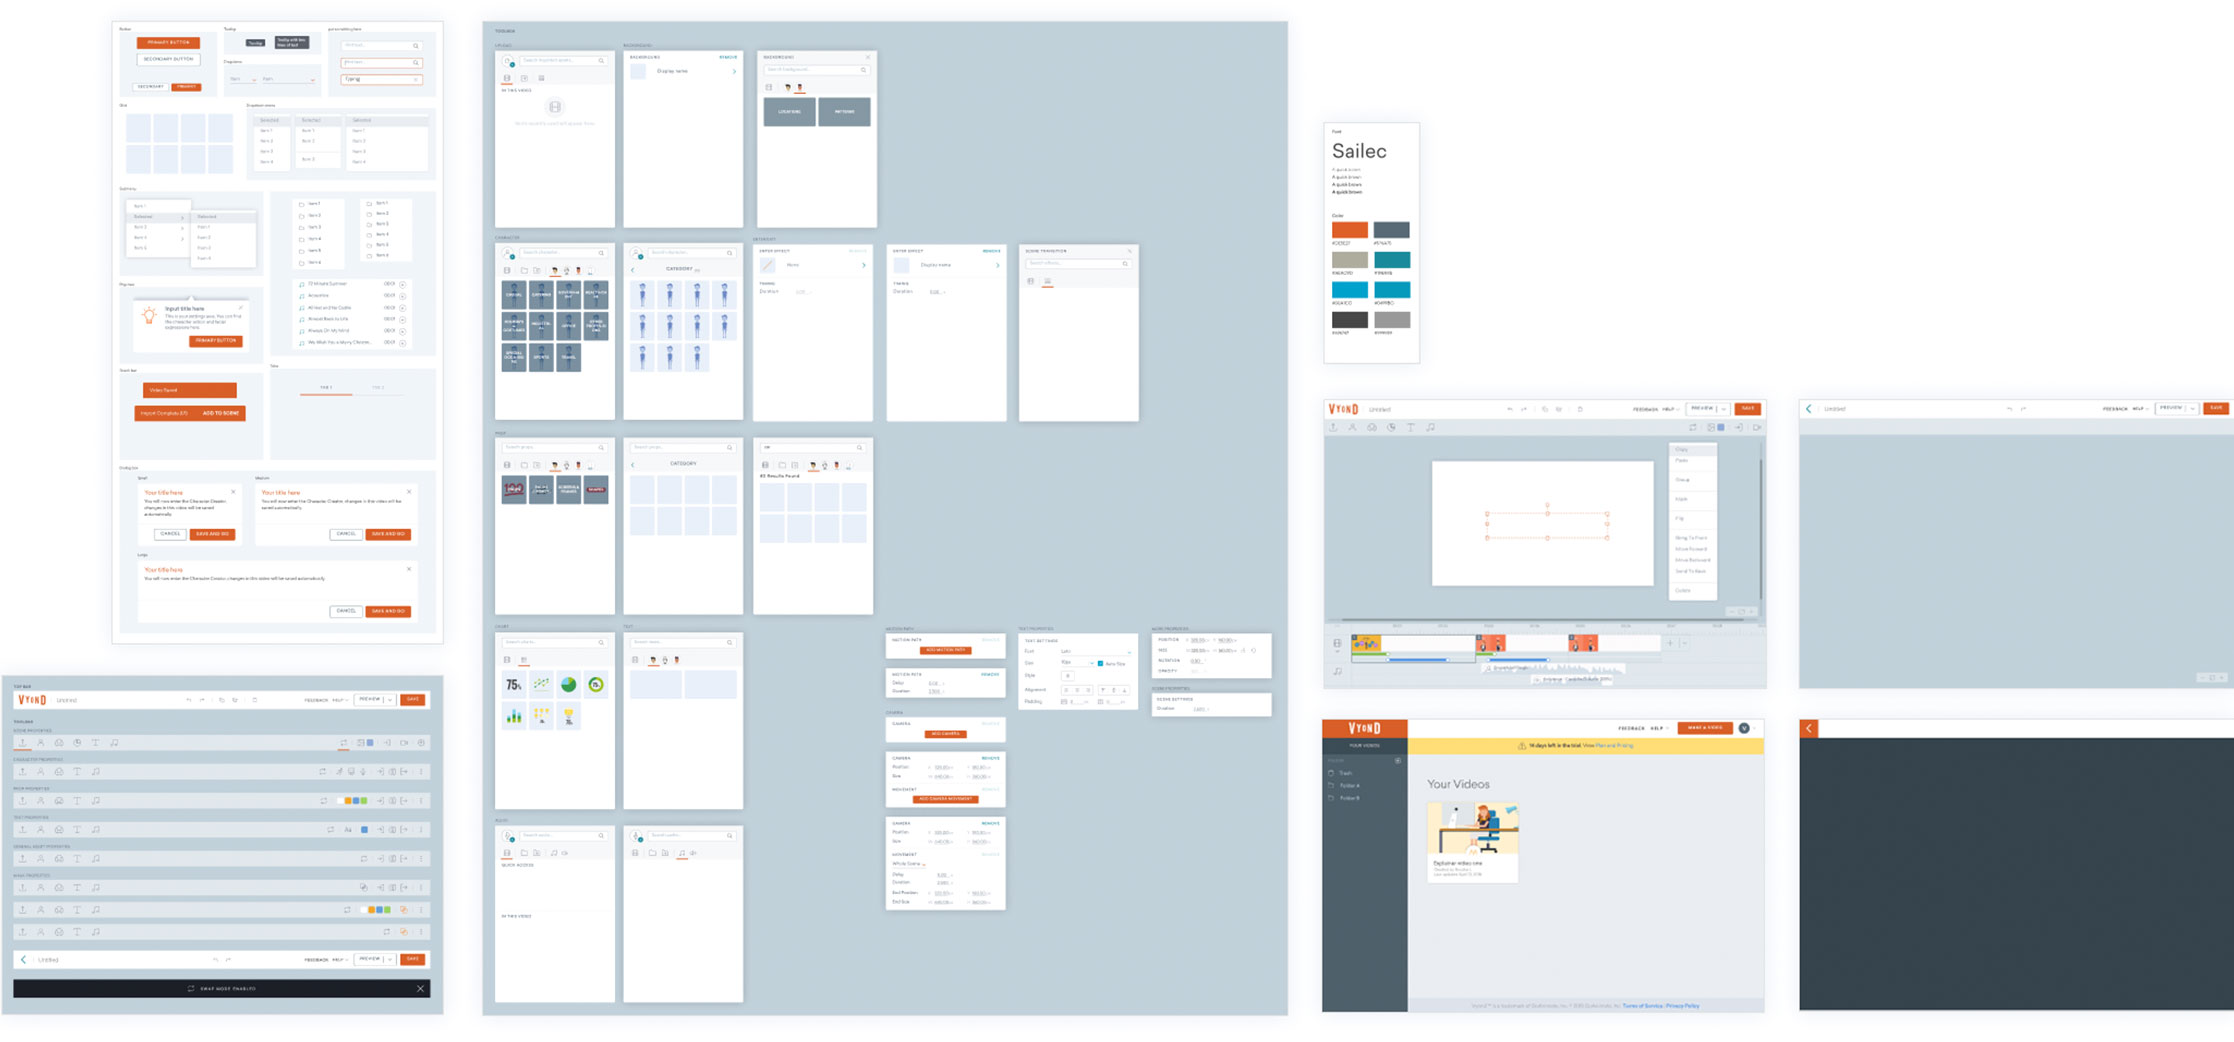 A common UI kit was created in Sketch for designers to use. They can quickly construct layouts and flows using consistent pre-made, editable and flexible Sketch symbols.